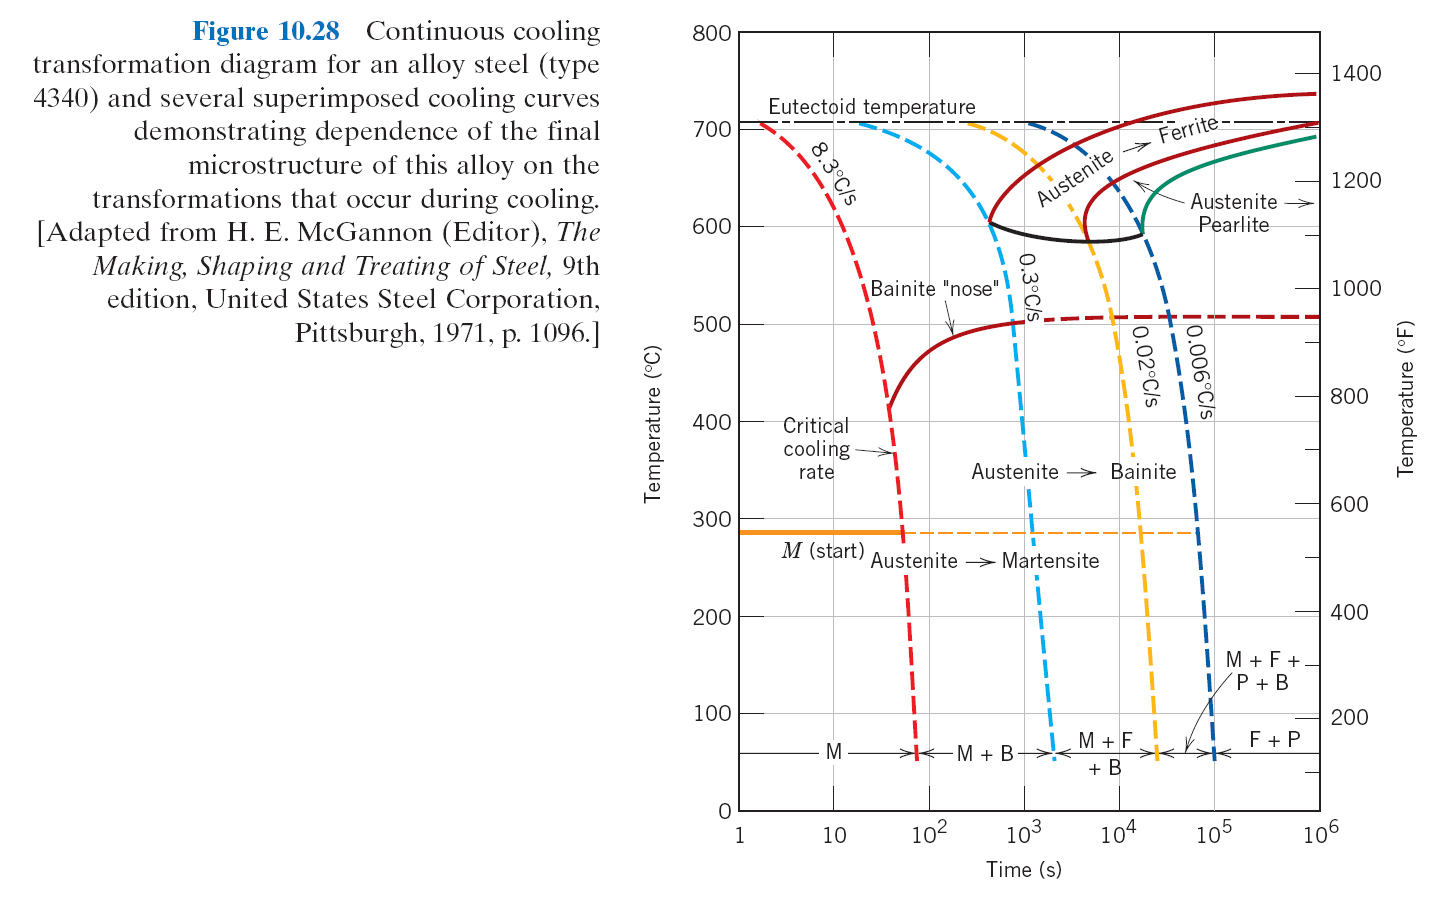 Mse250 f11 repository 2638 continuous cooling curve for 035 wt hypoeutectoid alloy class handout 3010 continuous cooling curve for 4340 alloy ccuart Gallery